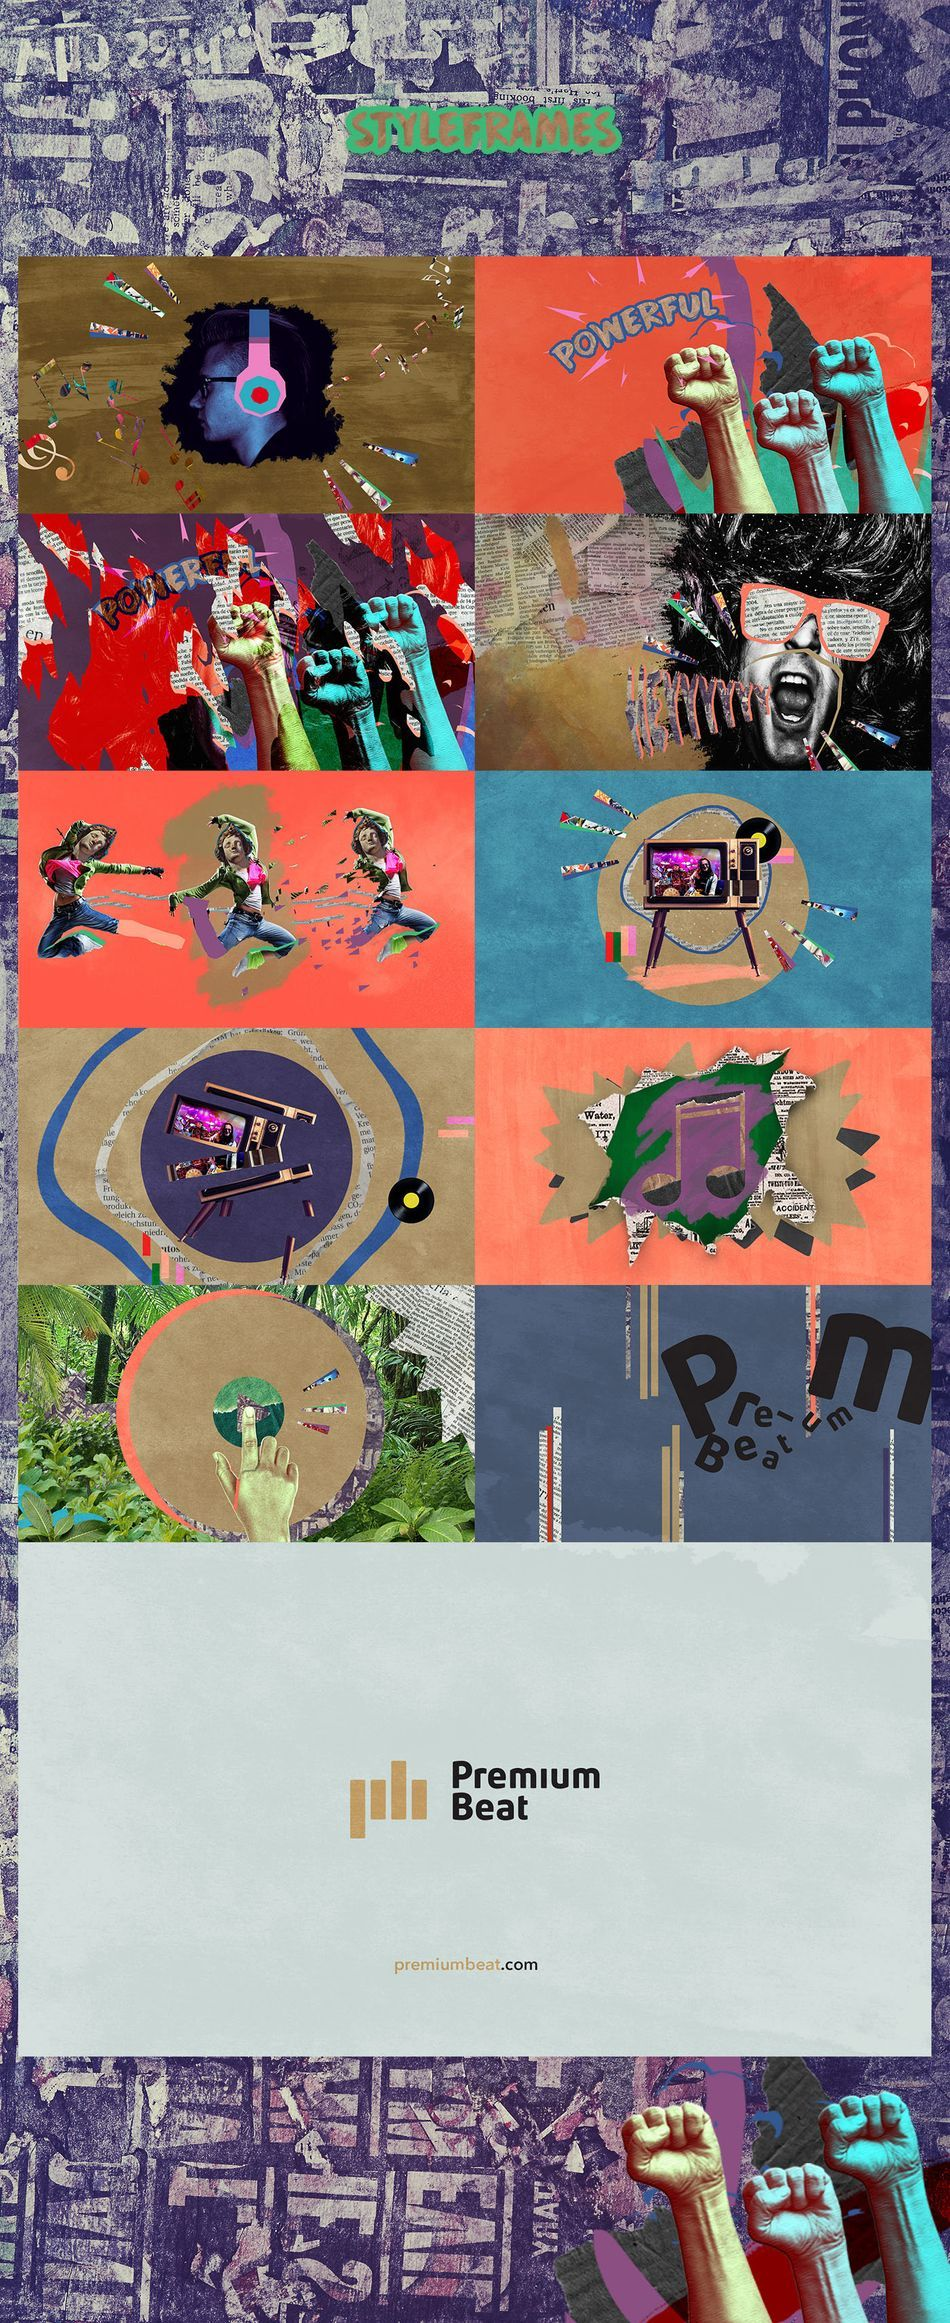 Lamek Design Bootcamp Collage.jpg